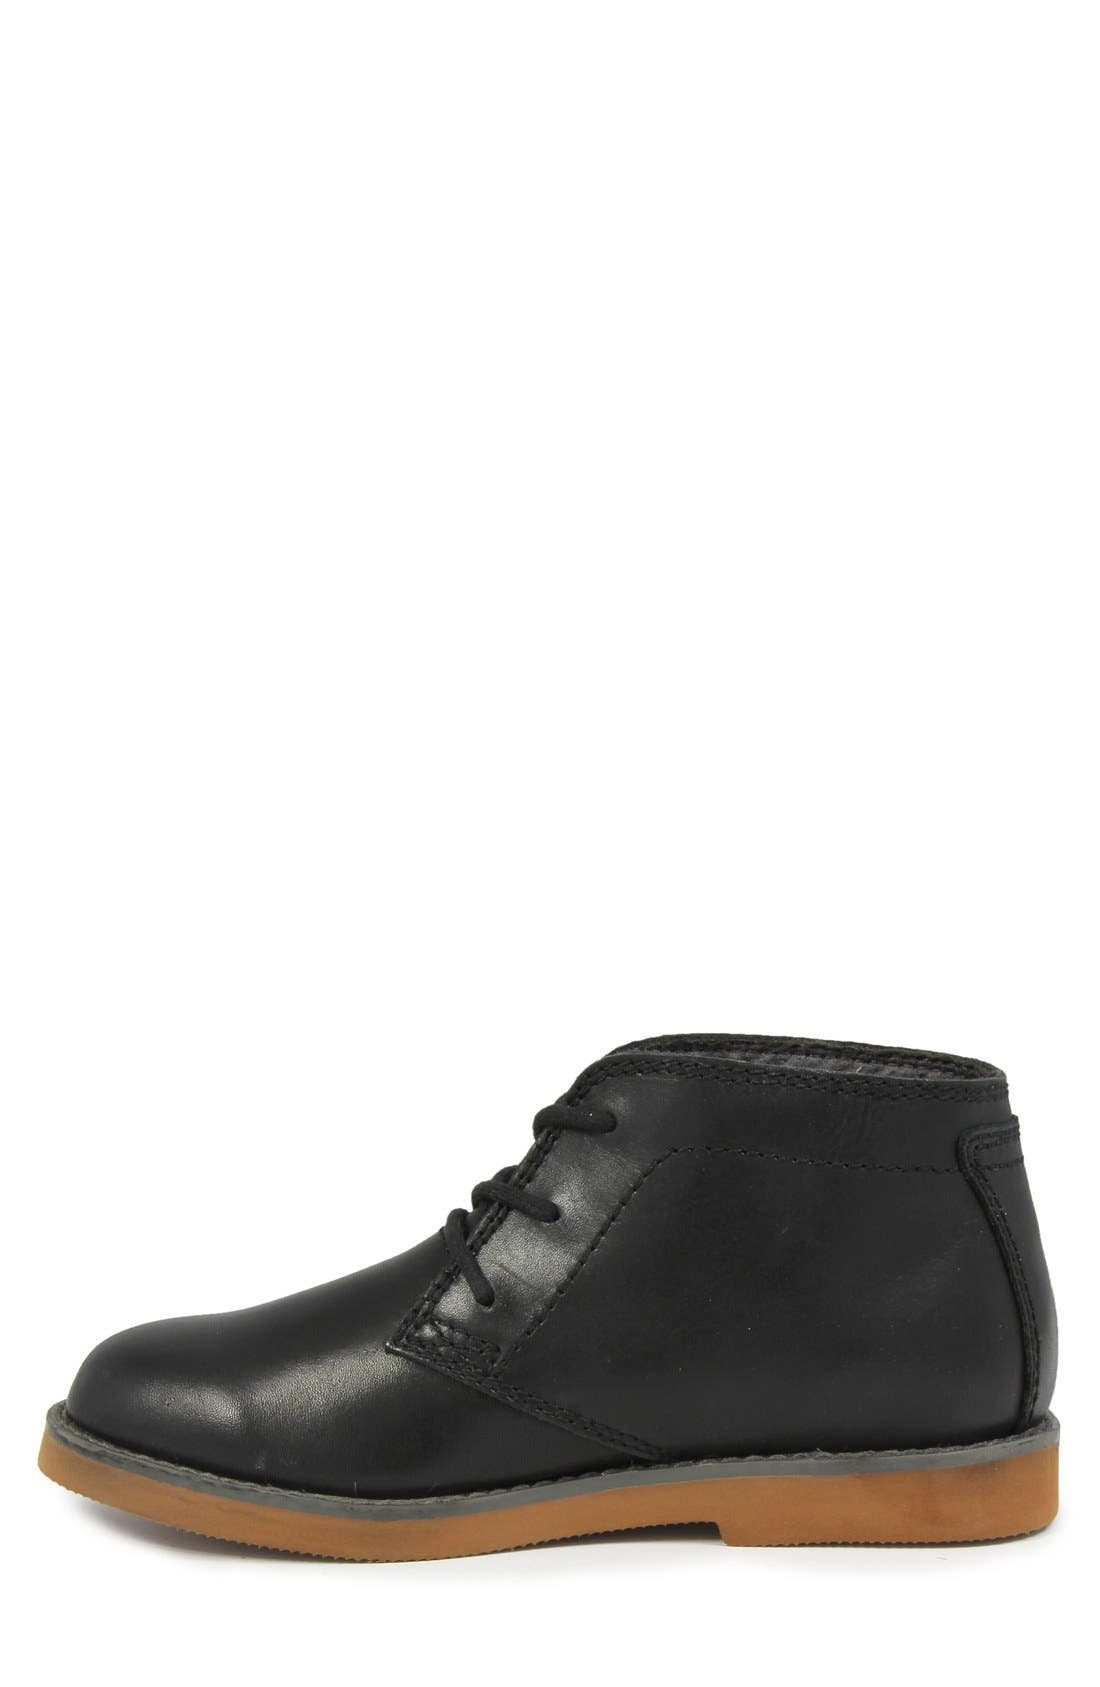 'Bucktown' Chukka Boot,                             Alternate thumbnail 4, color,                             Black Smooth With Brick Sole